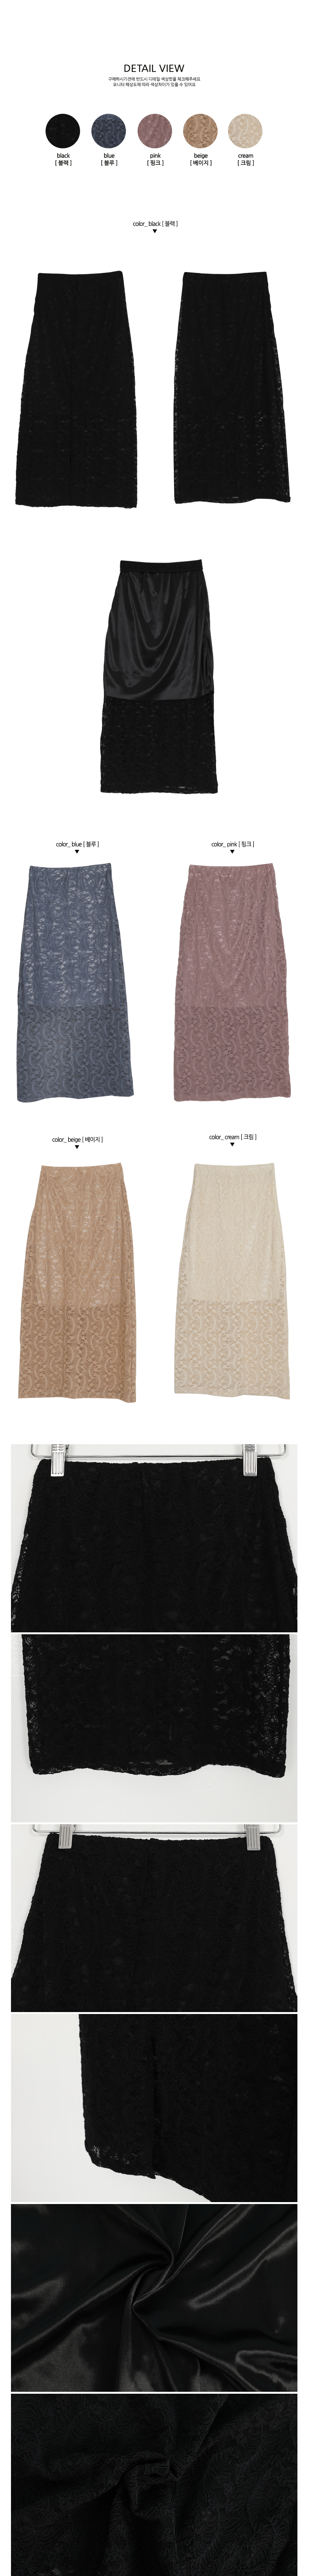 Angel lace skirt